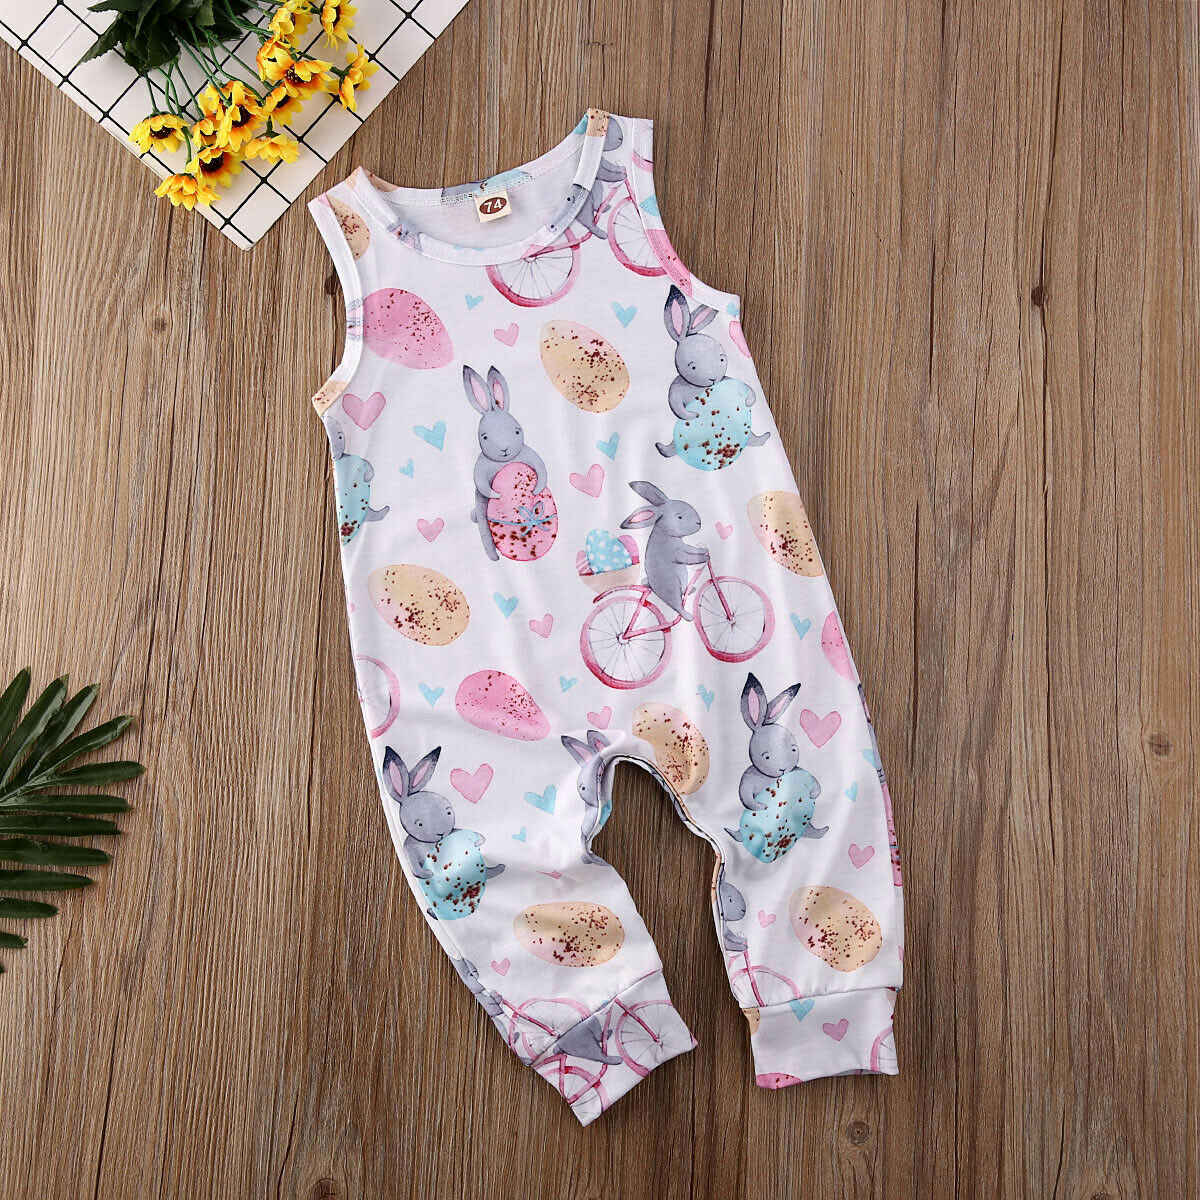 2019 Newborn Baby Girl Boy Easter Bunny Clothes Romper Playsuit Sunsuit Outfit Set